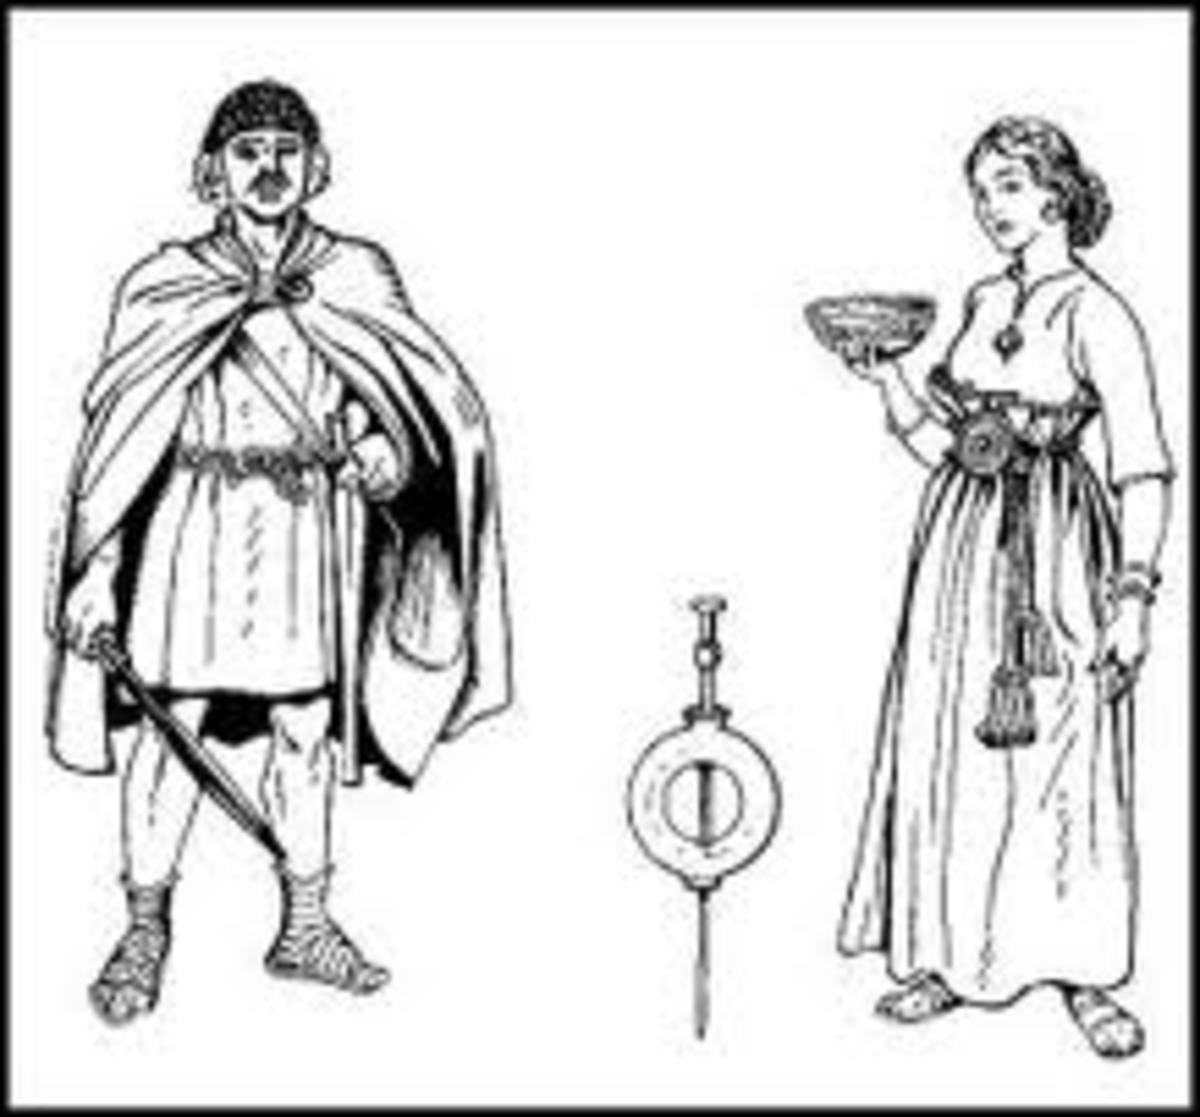 bronze age brooches fastened clothing